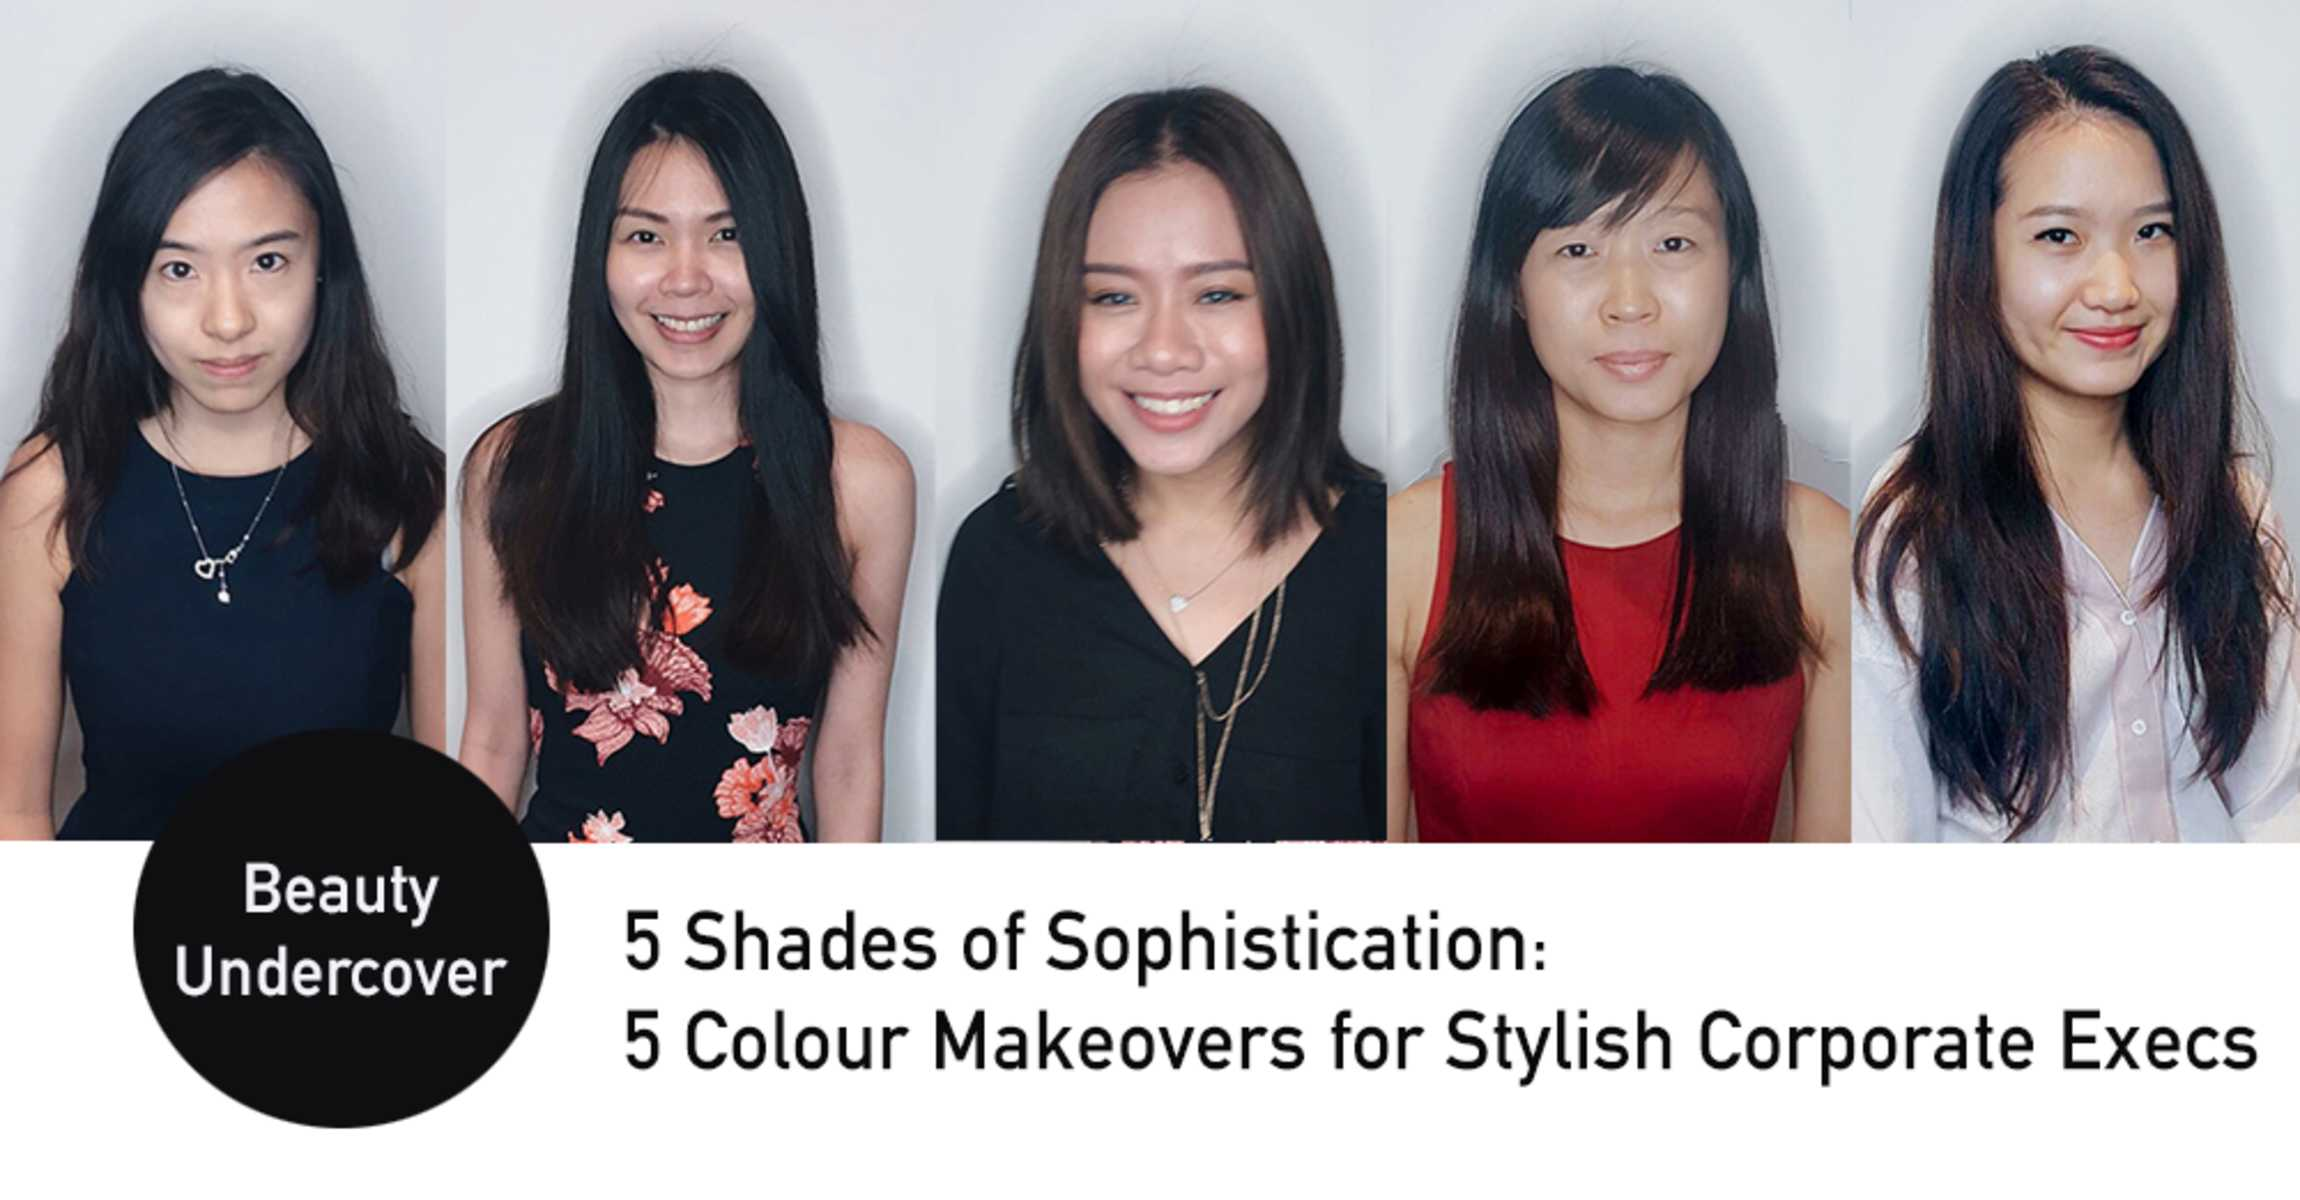 Fit for Work: 5 Trendy Hair Colour Makeovers for Office Executives